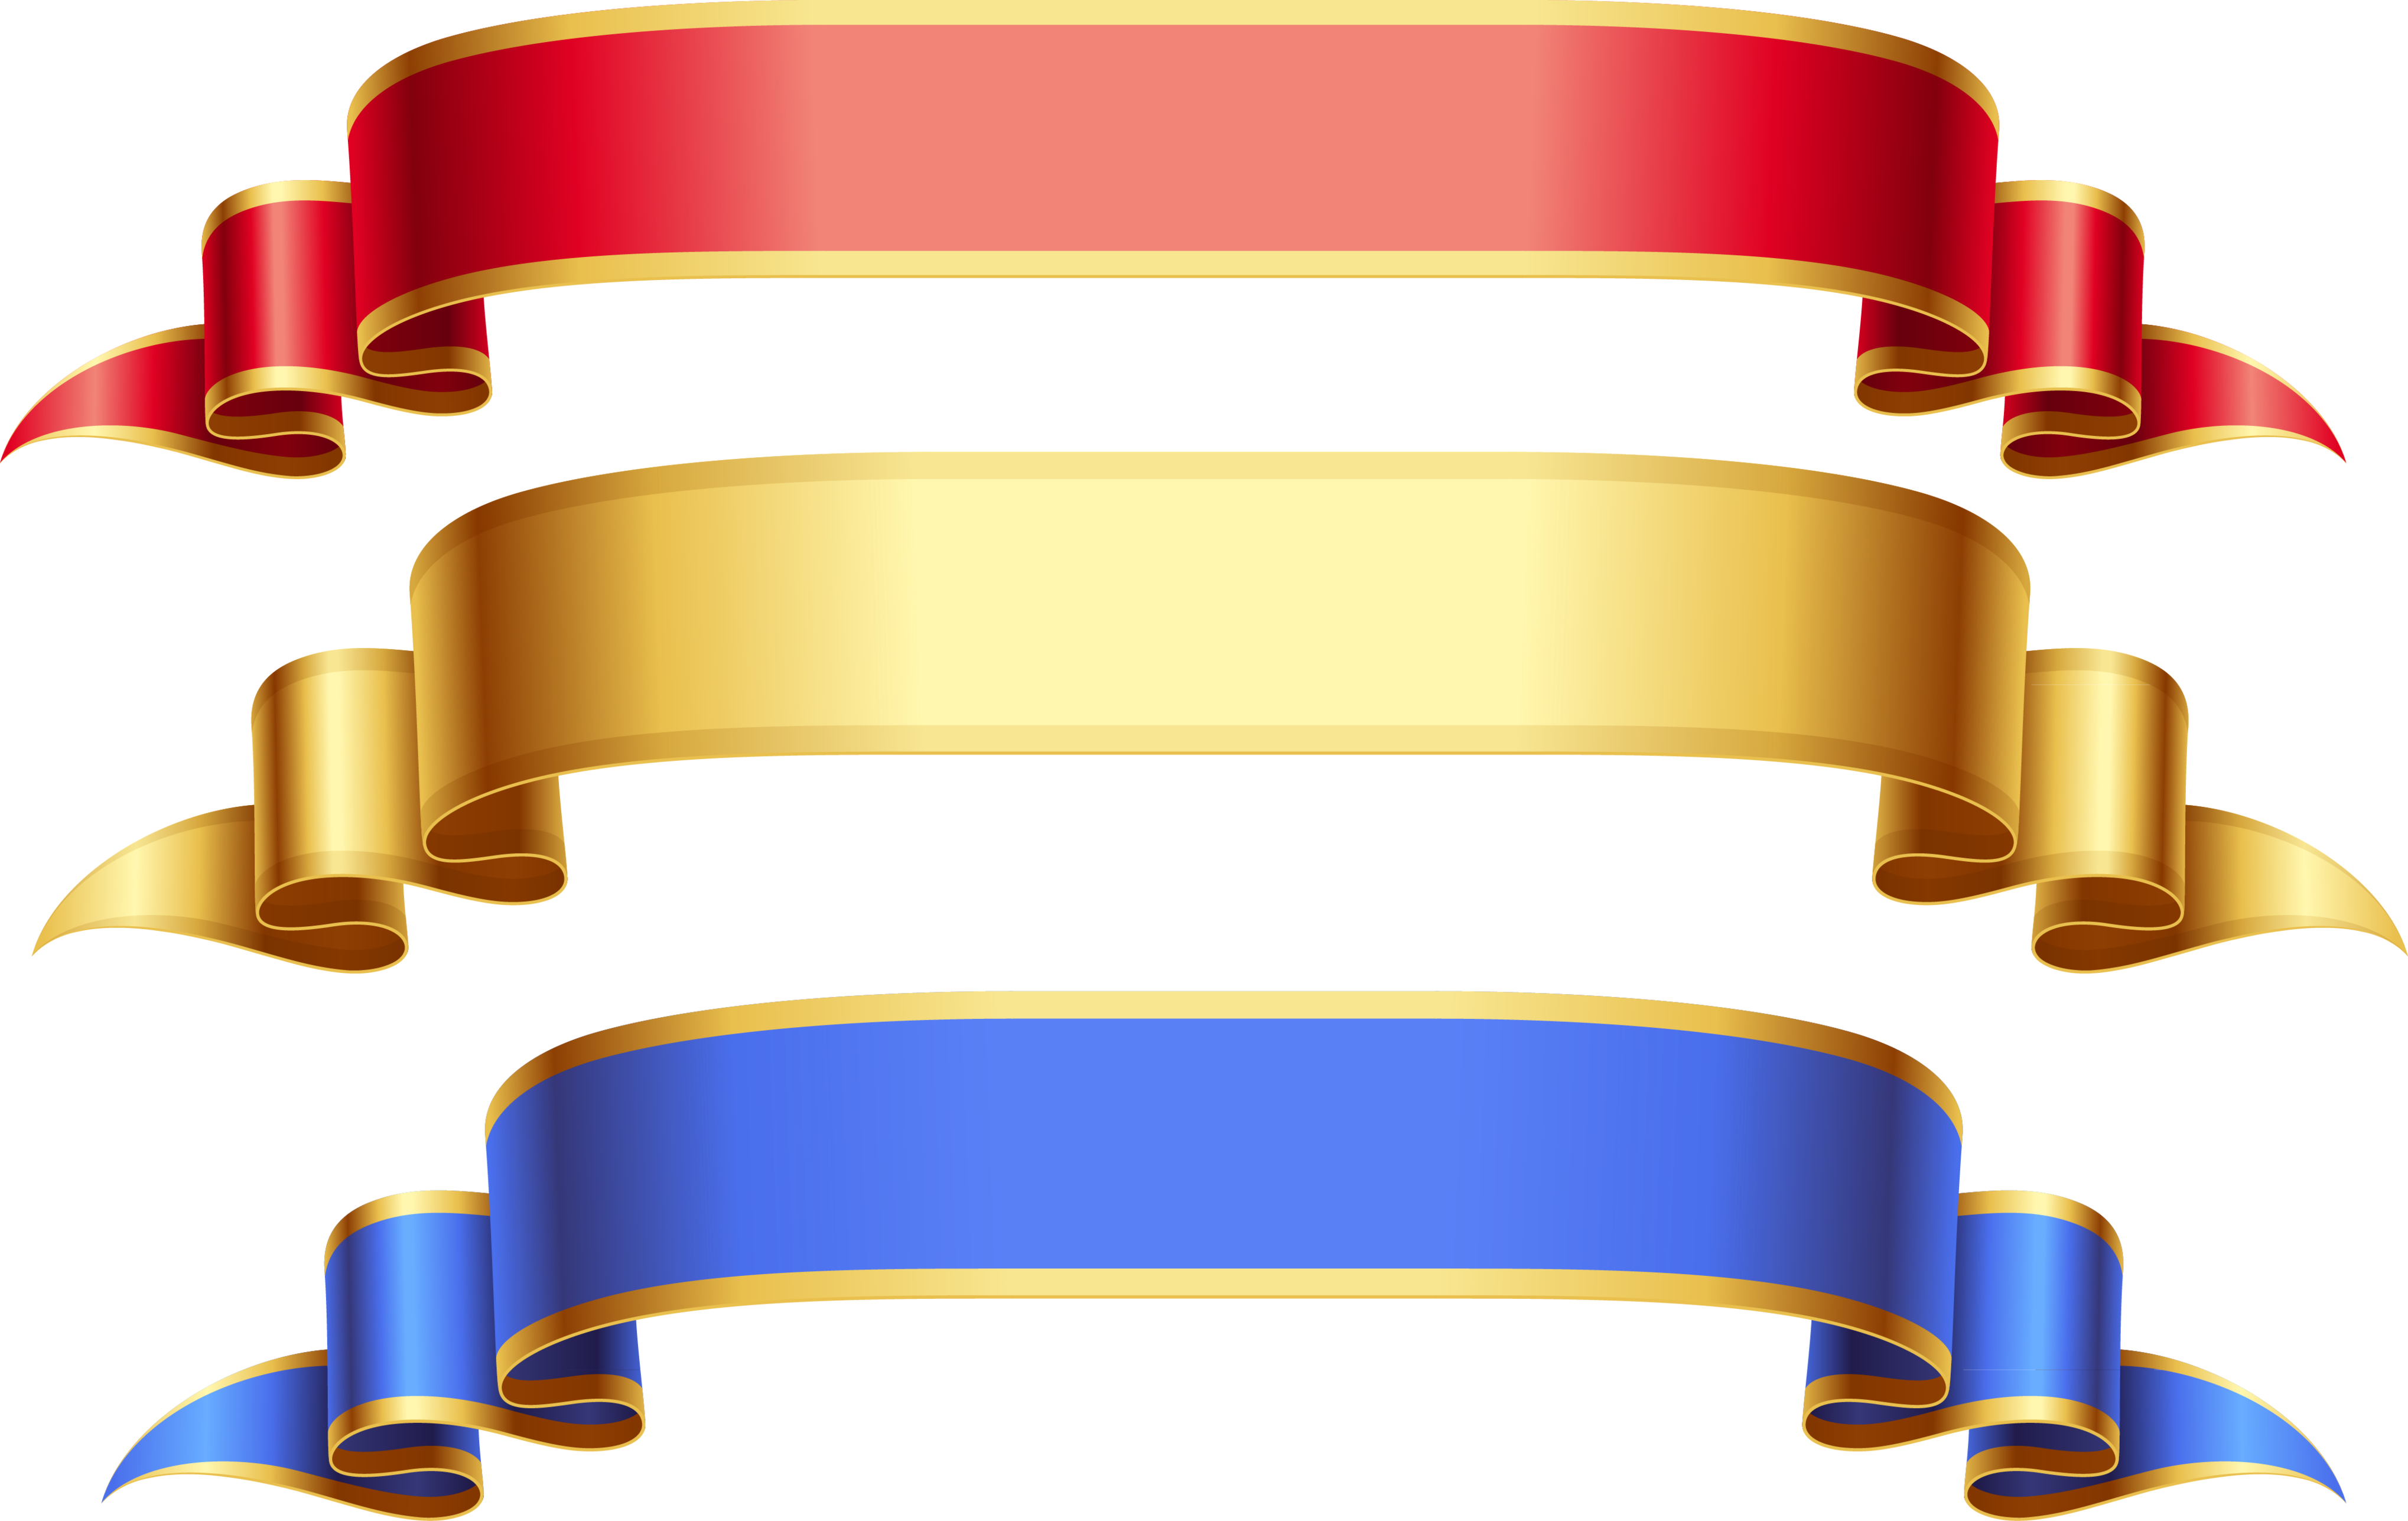 Straight ribbon banner png. Free clipart pretty inspiration